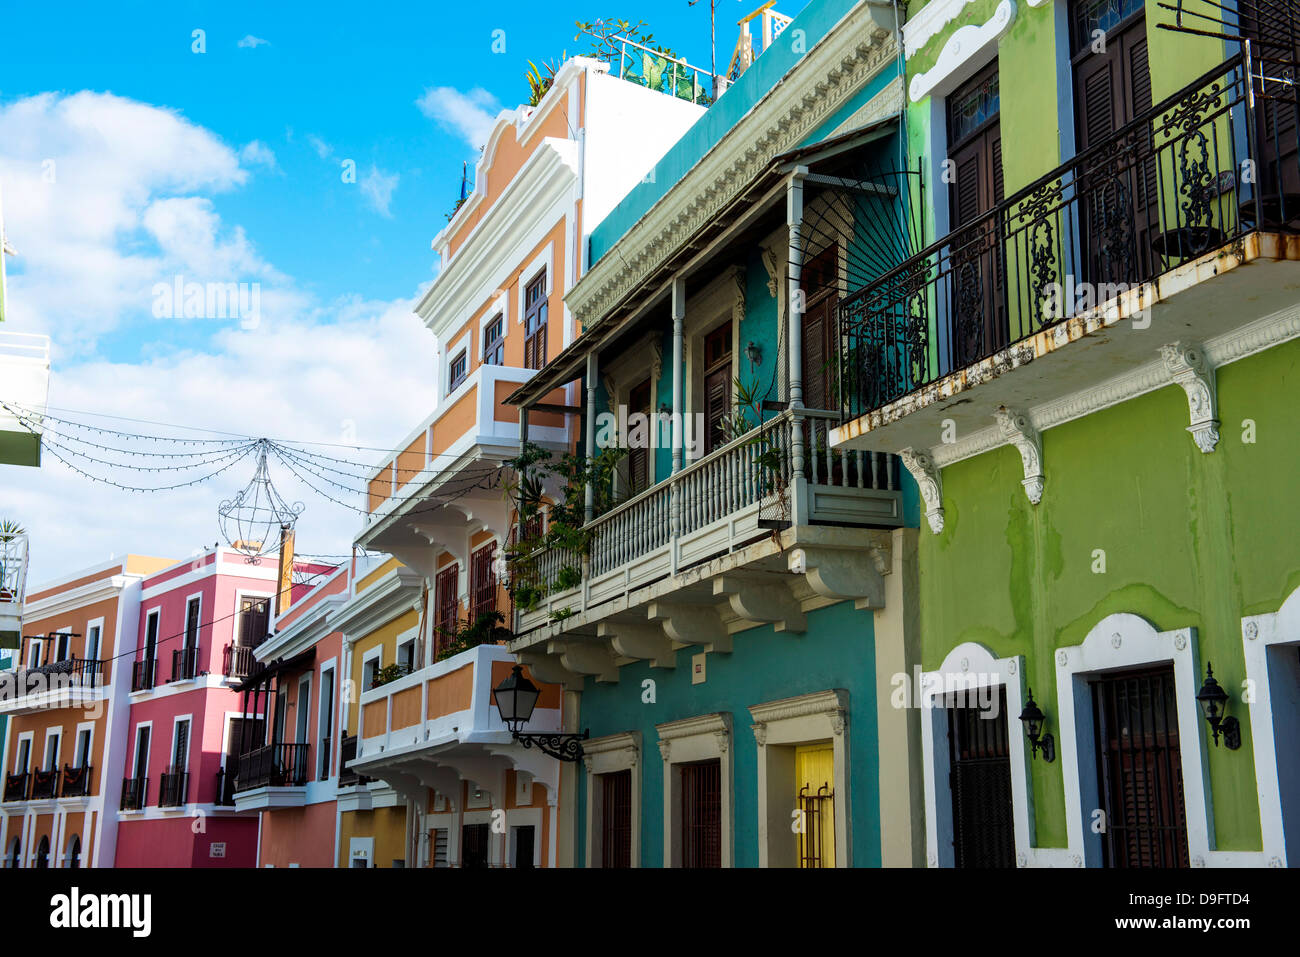 Colourful buildings in the old town of San Juan, UNESCO World Heritage Site, Puerto Rico, West Indies, Caribbean - Stock Image